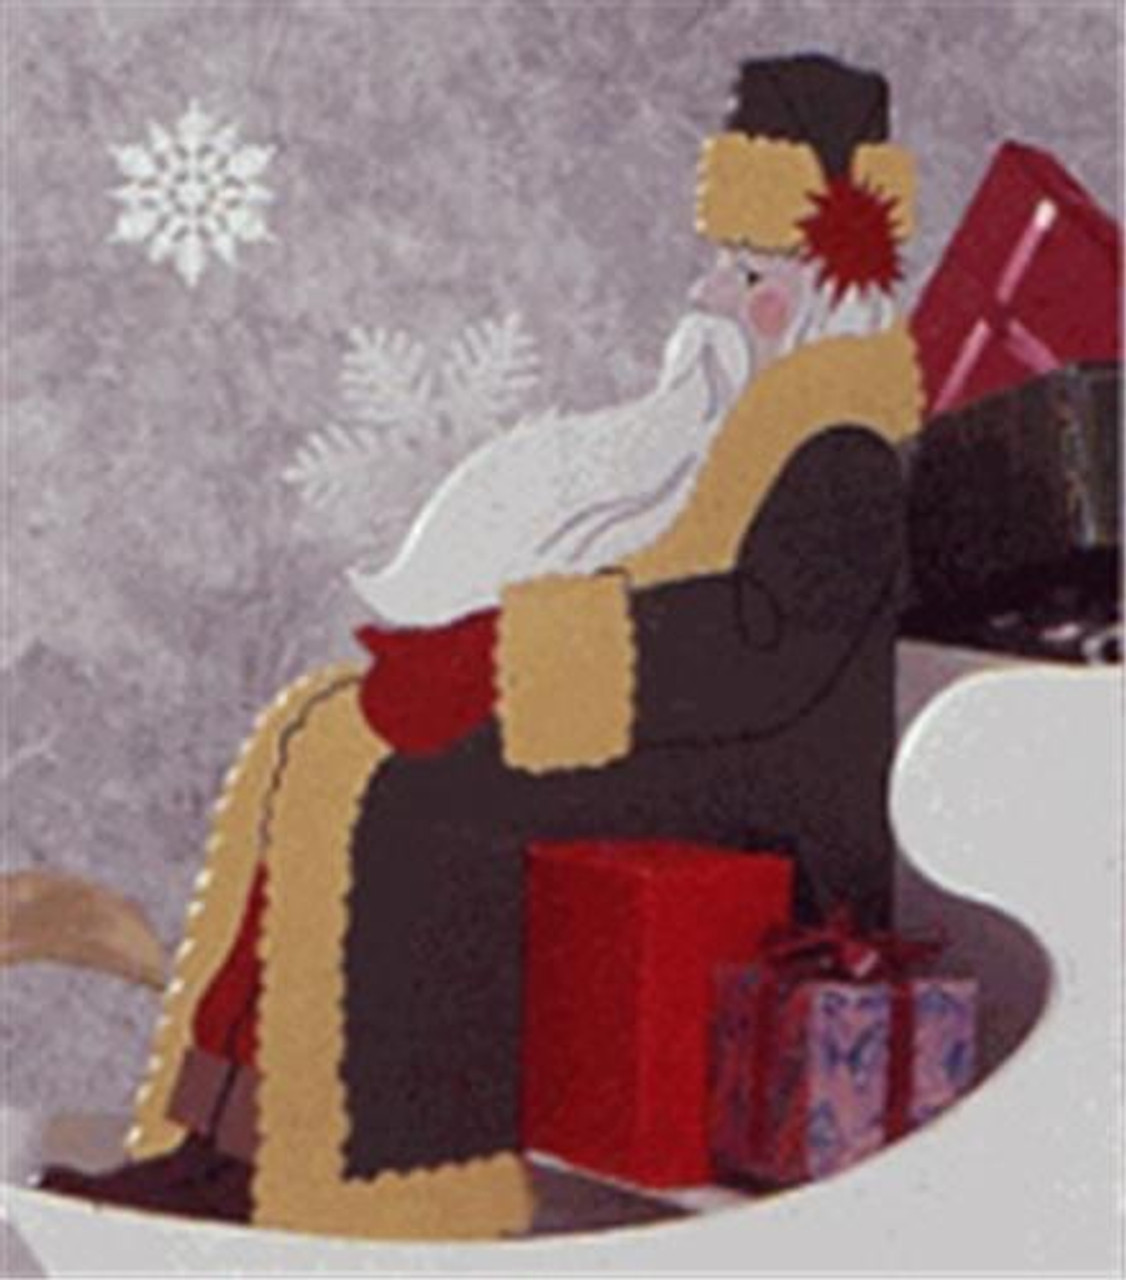 Wood Magazine High Styled Saint Nick woodworking Plan you can cut out of wood and paint.